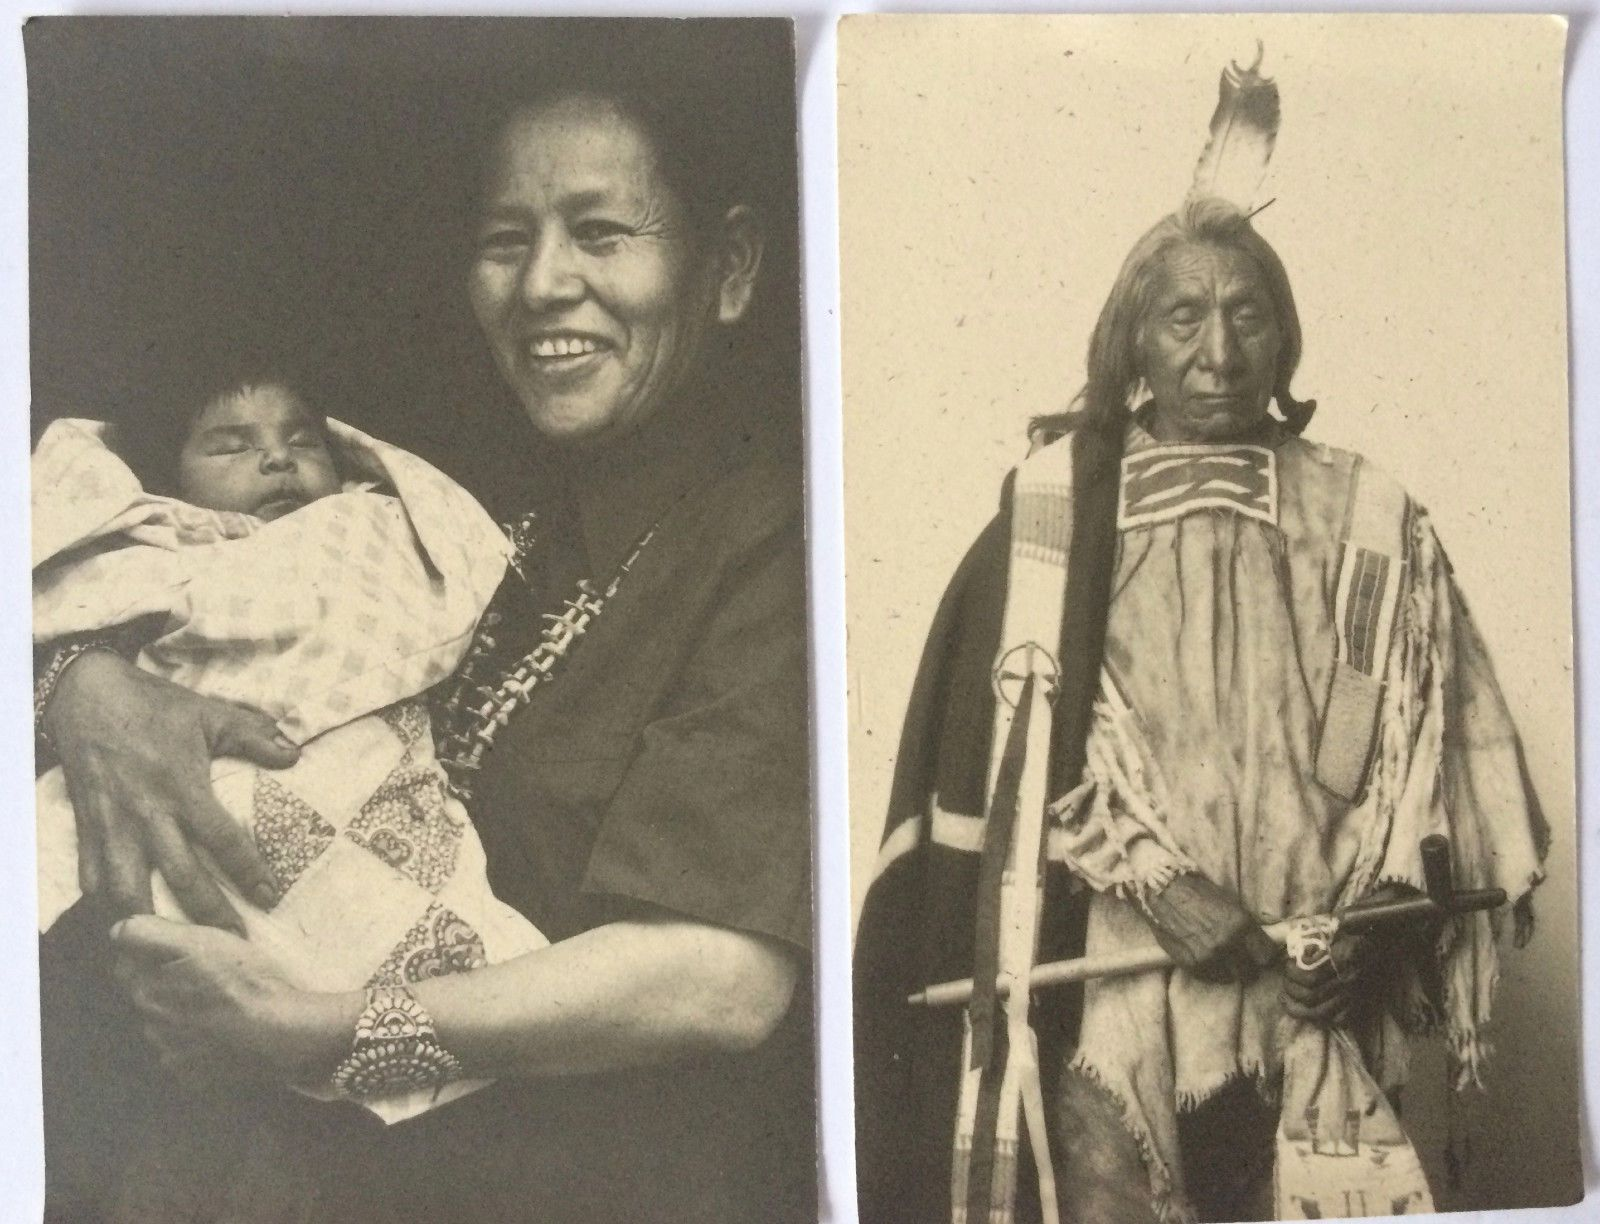 Set 2 native american navajo indian portrait photograph postcards set 2 native american navajo indian portrait photograph postcards red cloud 1898 ebay kristyandbryce Choice Image